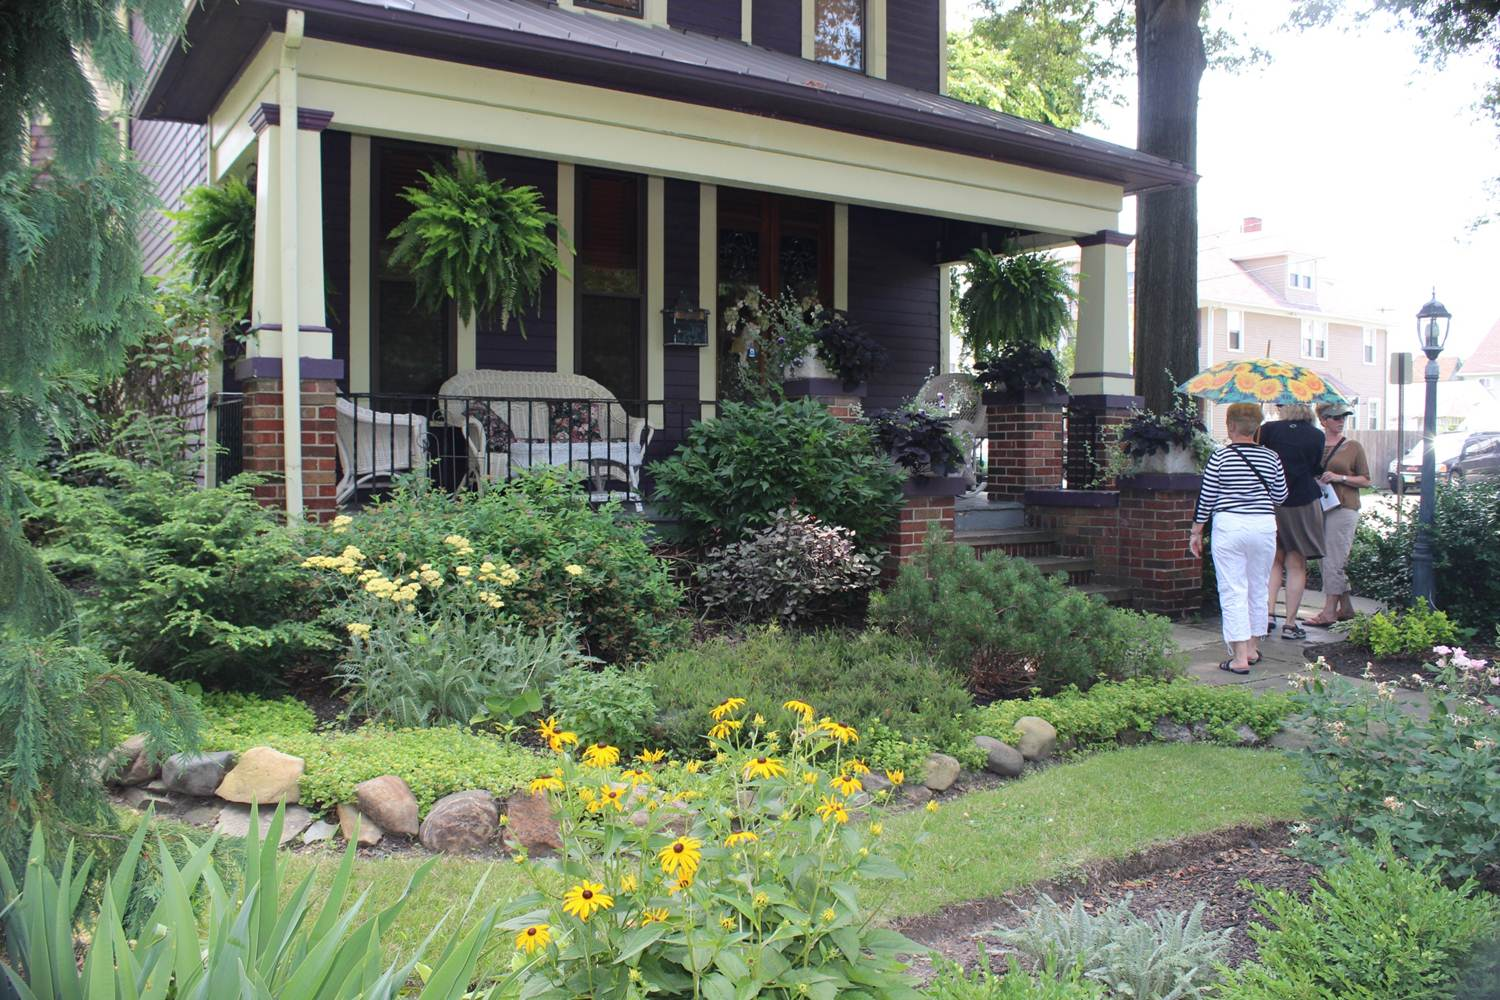 Visitors tour a garden in the city of Cleveland.